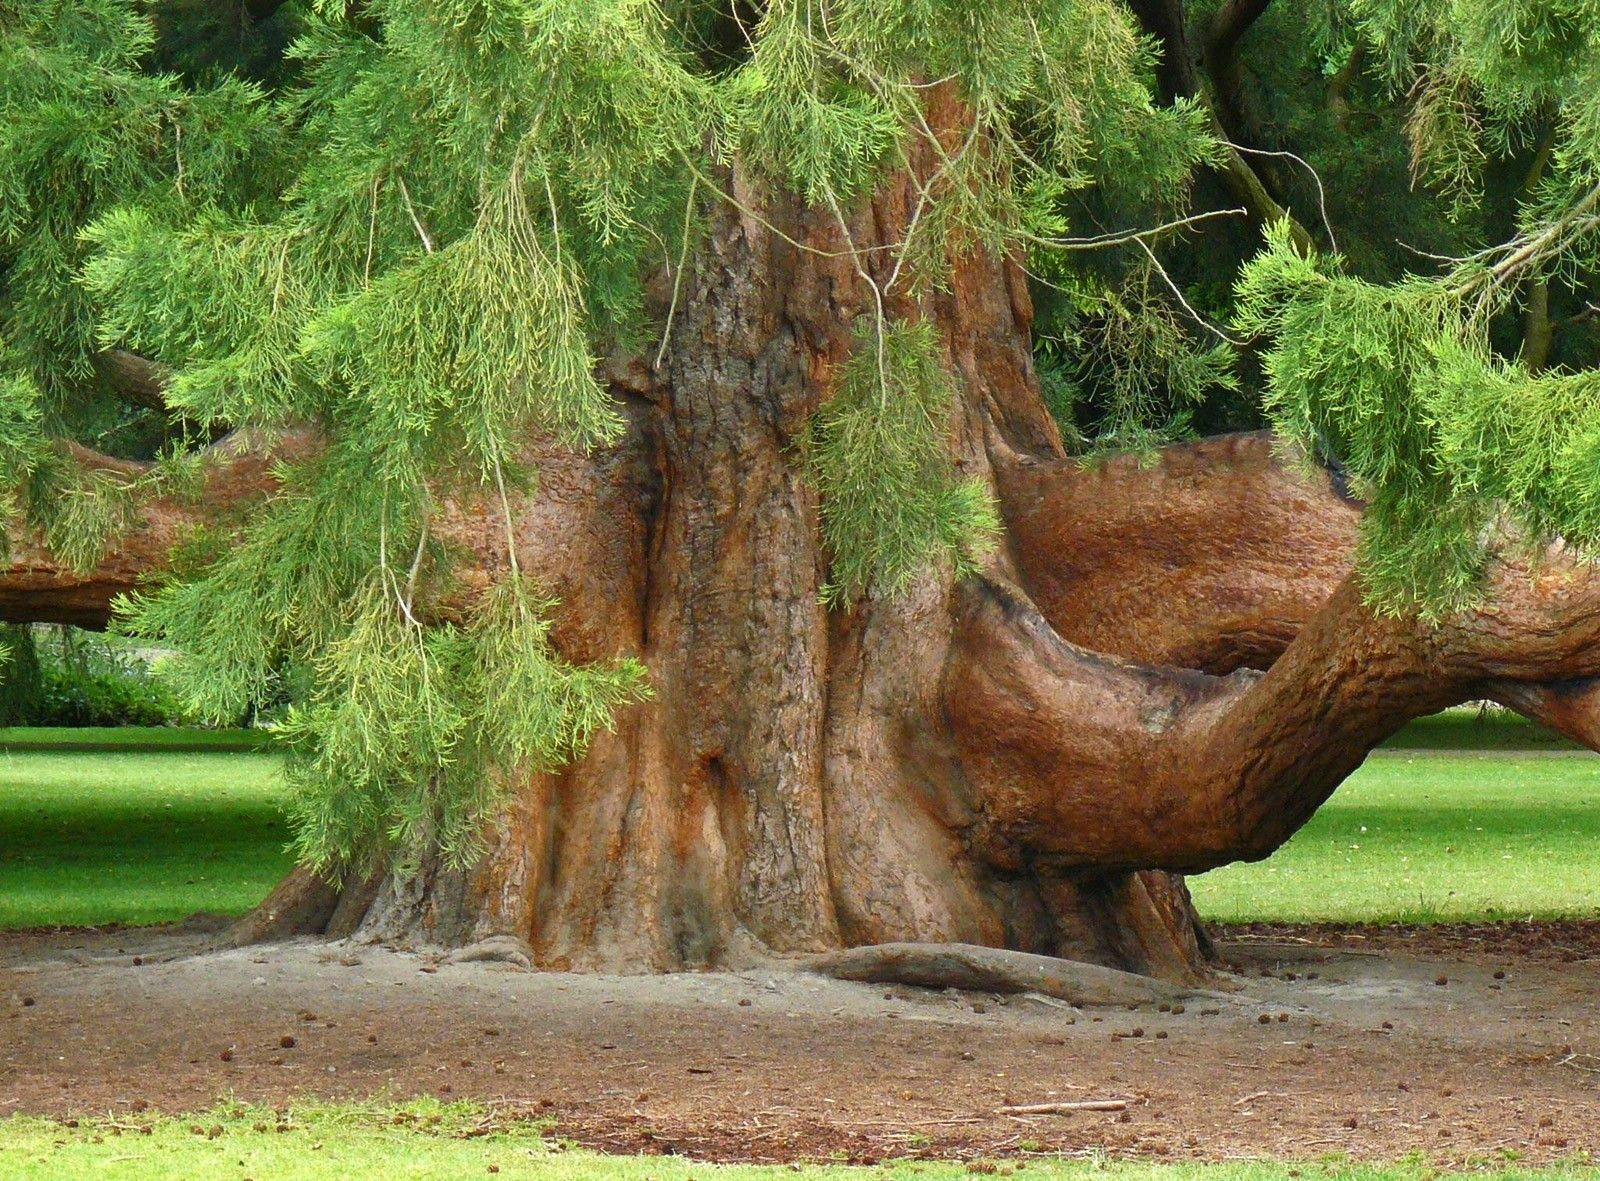 113 best awesome trees images on Pinterest   Forests, Roots and Old ...